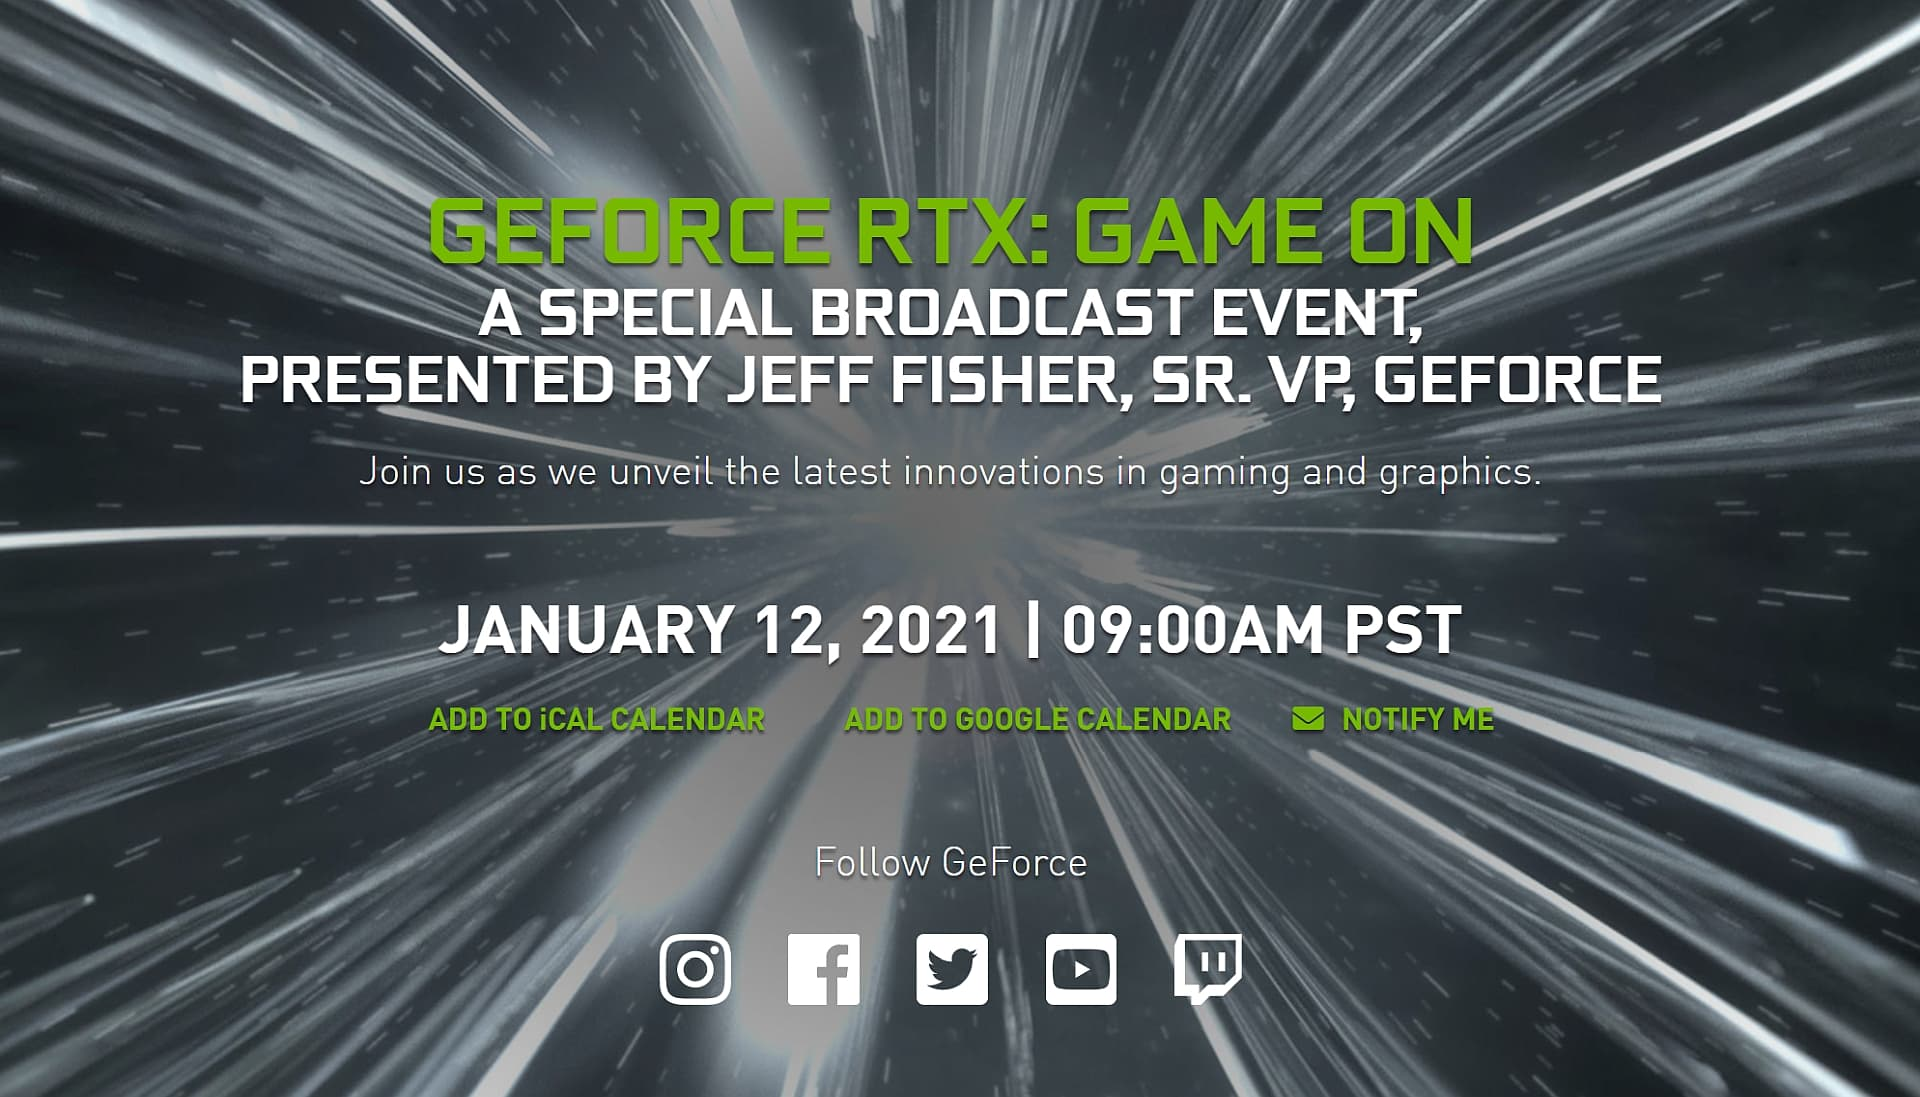 Nvidia invites to events focusing on RTX